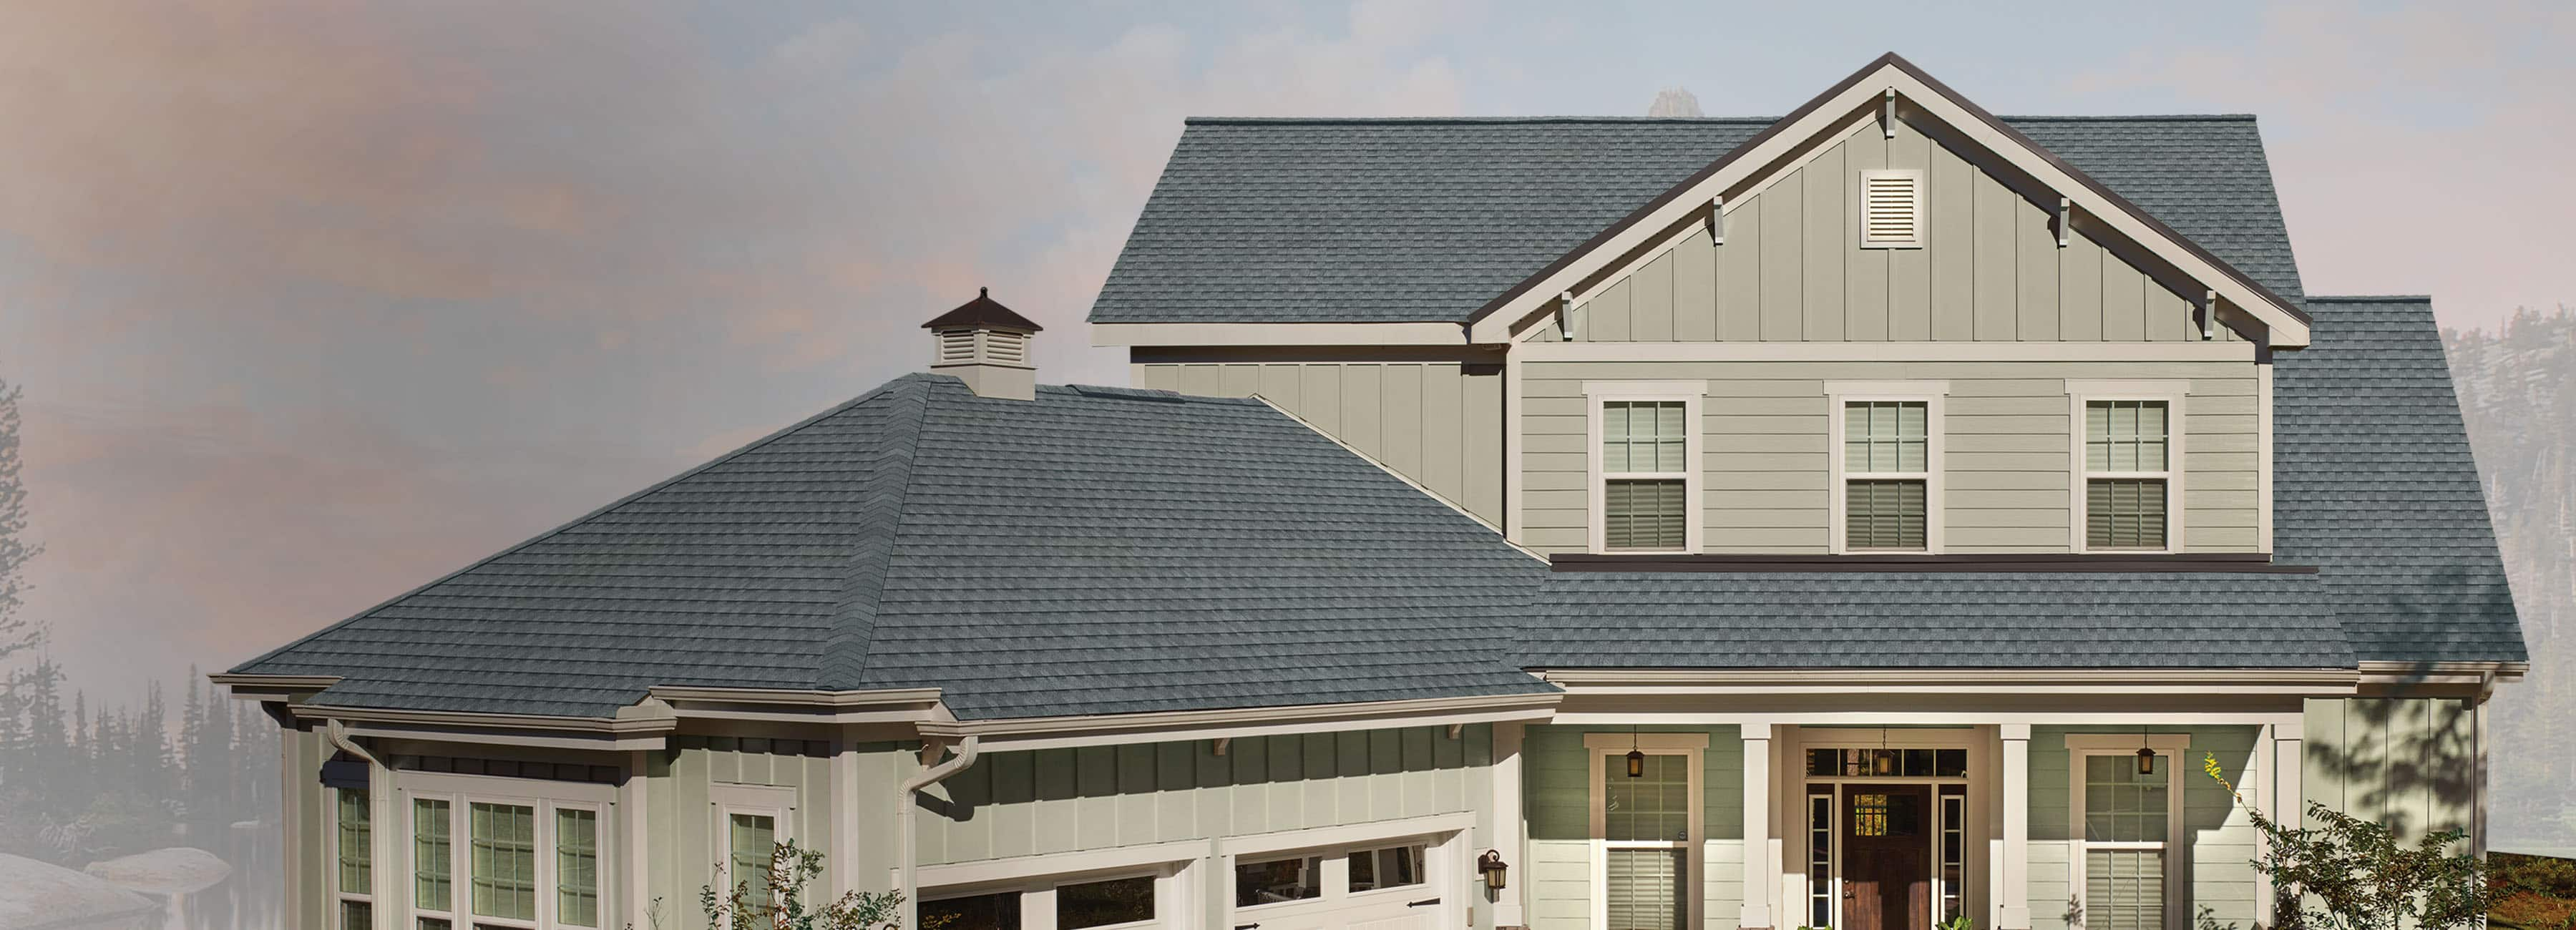 Gaf Roofing Gaf Residential Roofing Products